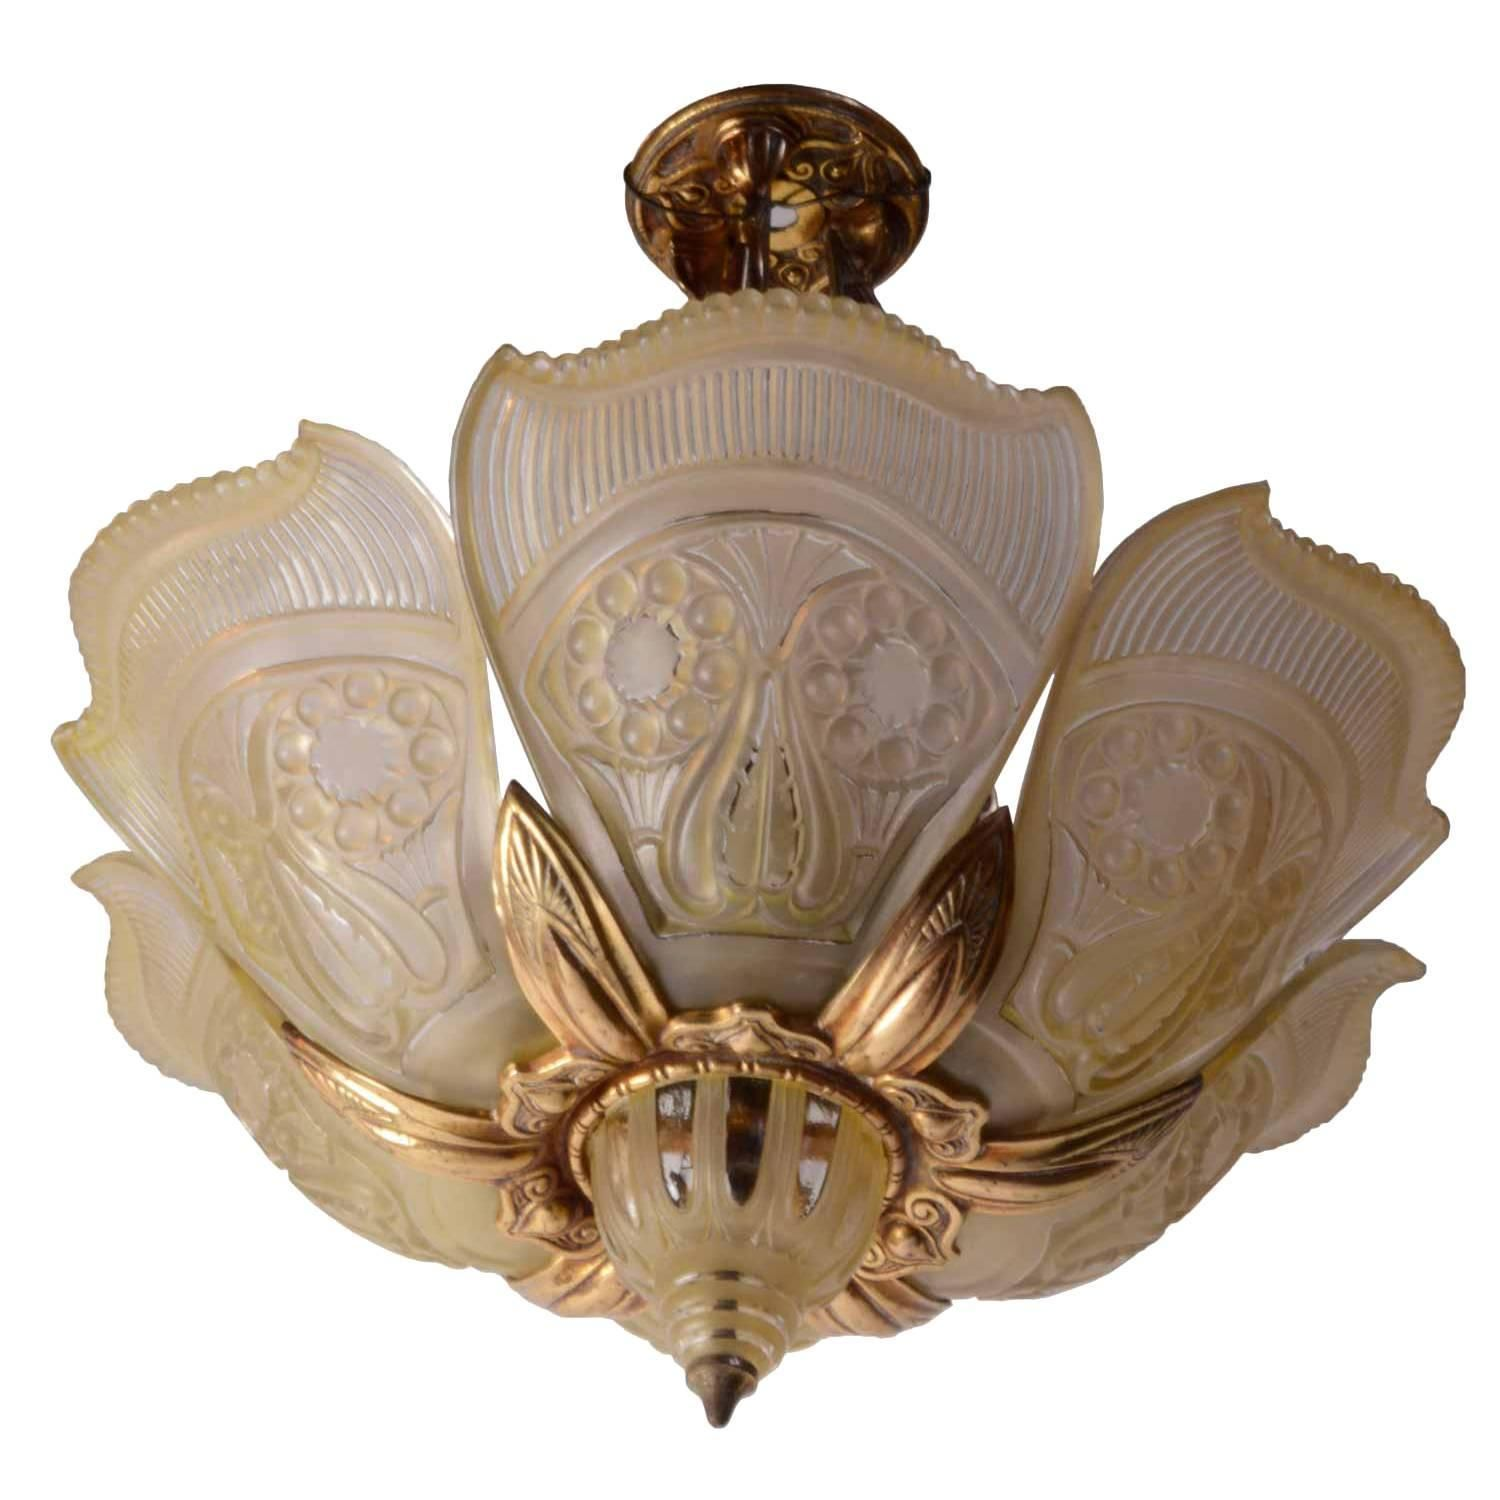 Bronze Art Deco Slipper Shade Fixture, circa 1930 | From a unique collection of antique and modern chandeliers and pendants at https://www.1stdibs.com/furniture/lighting/chandeliers-pendant-lights/